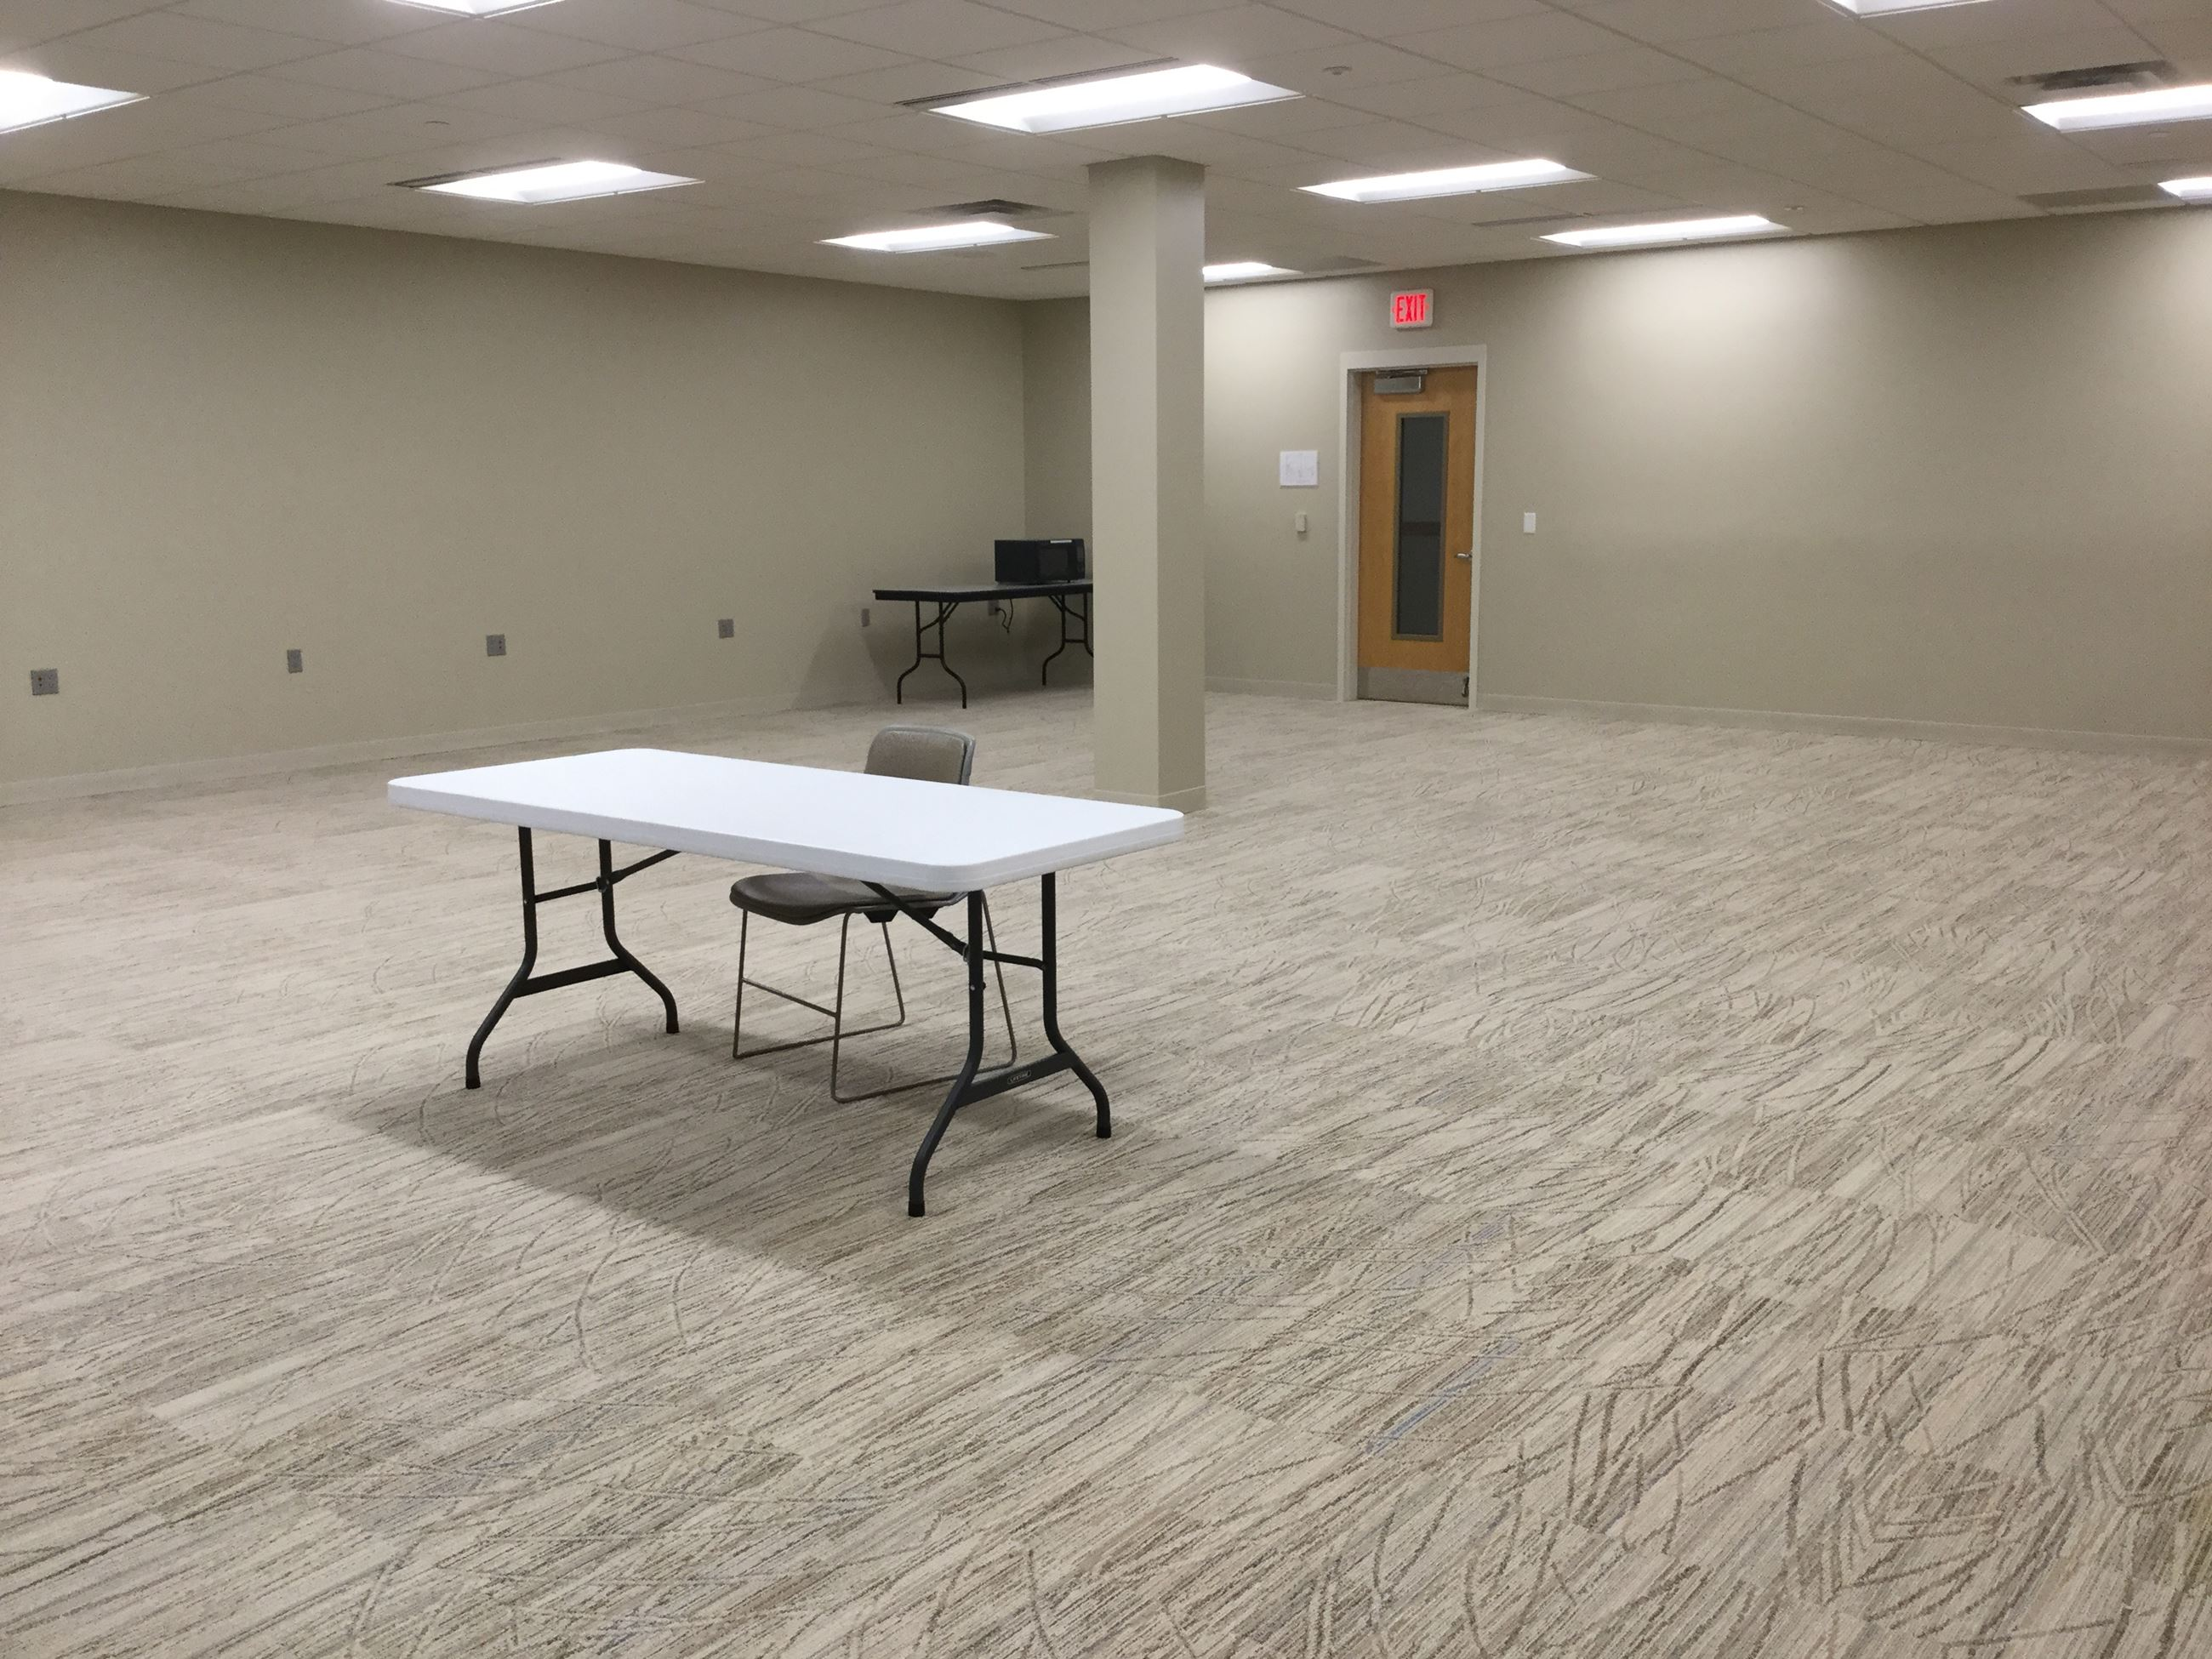 North Activity Room